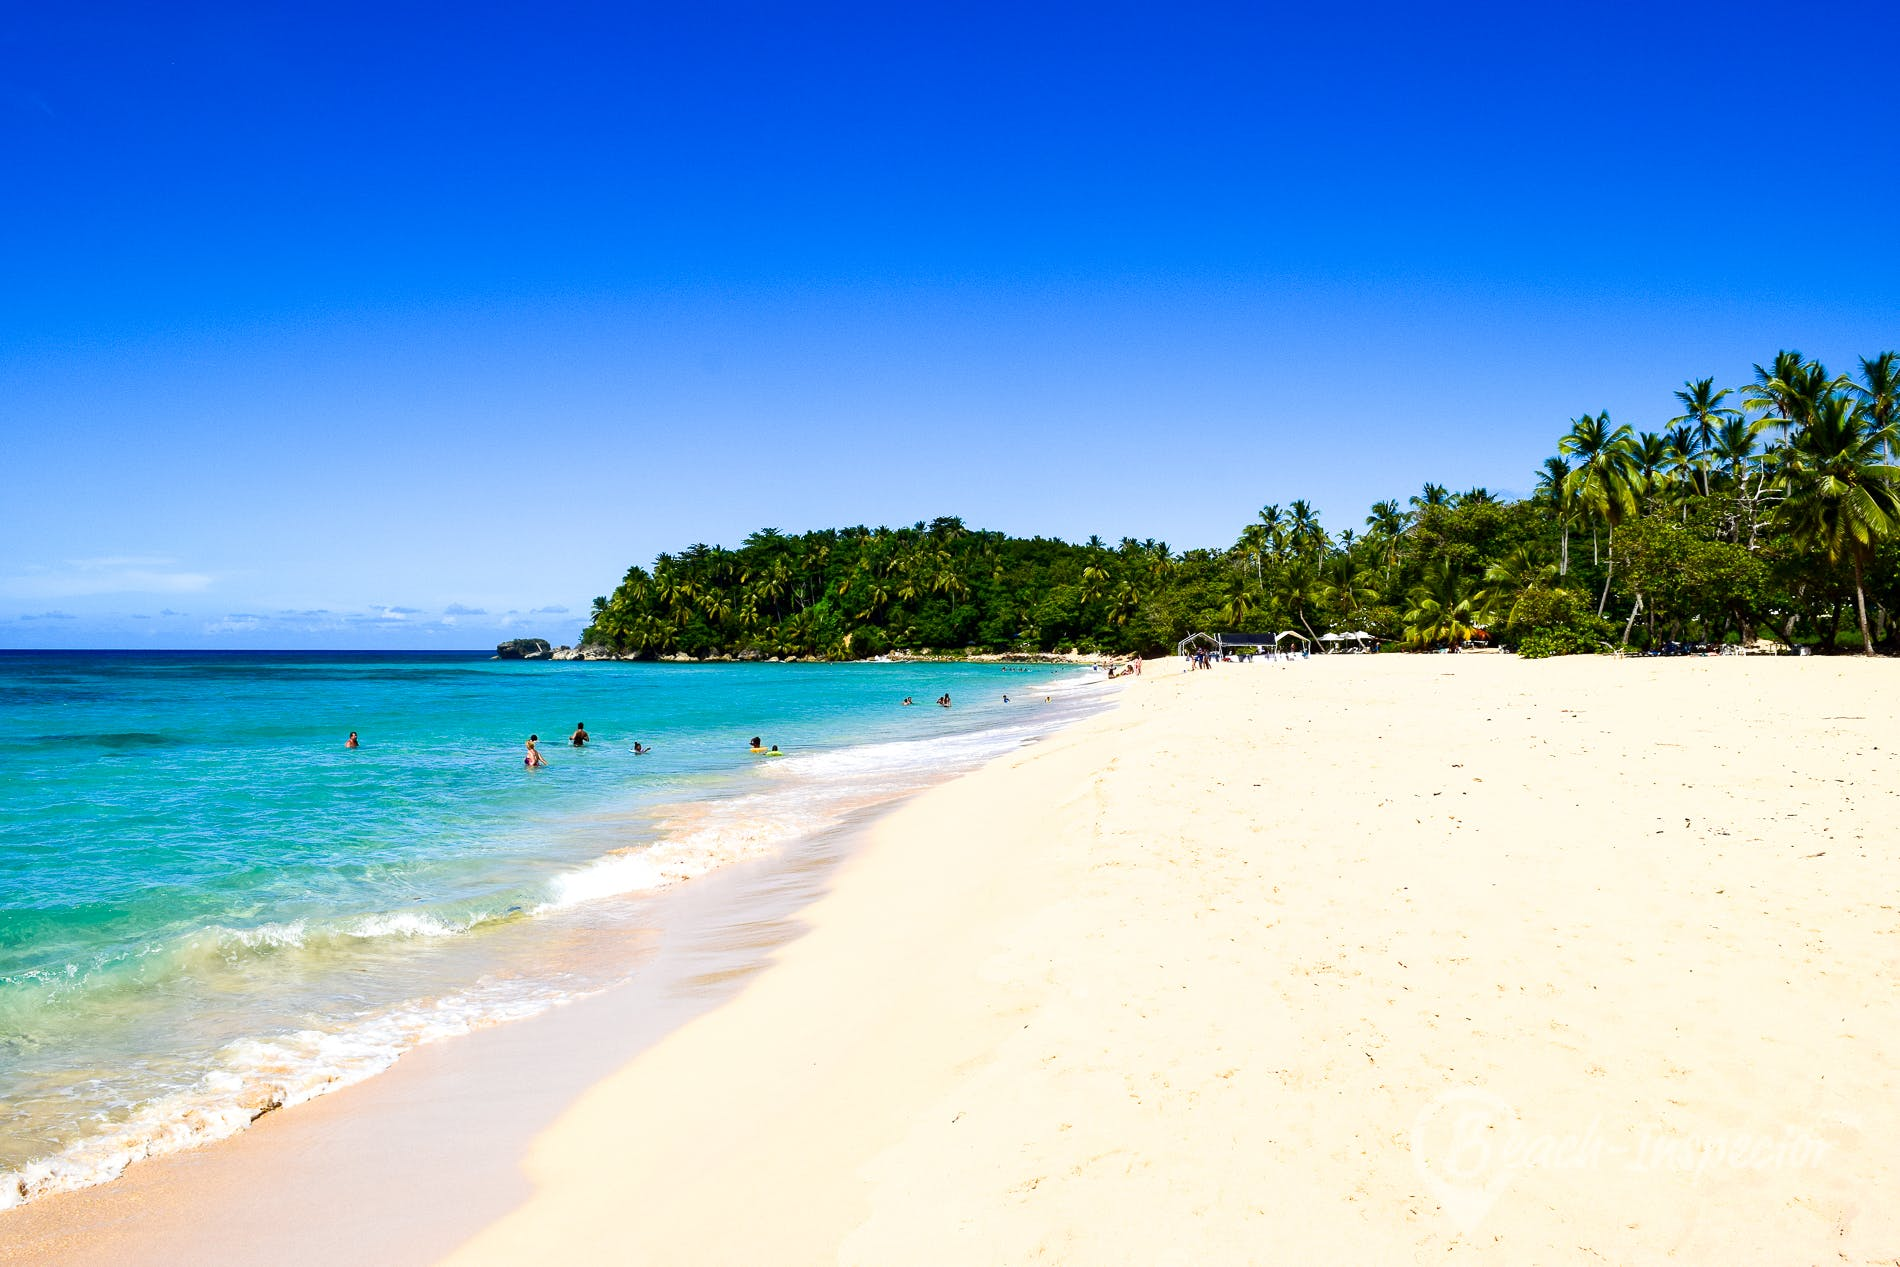 playa grande dominican republic all information and